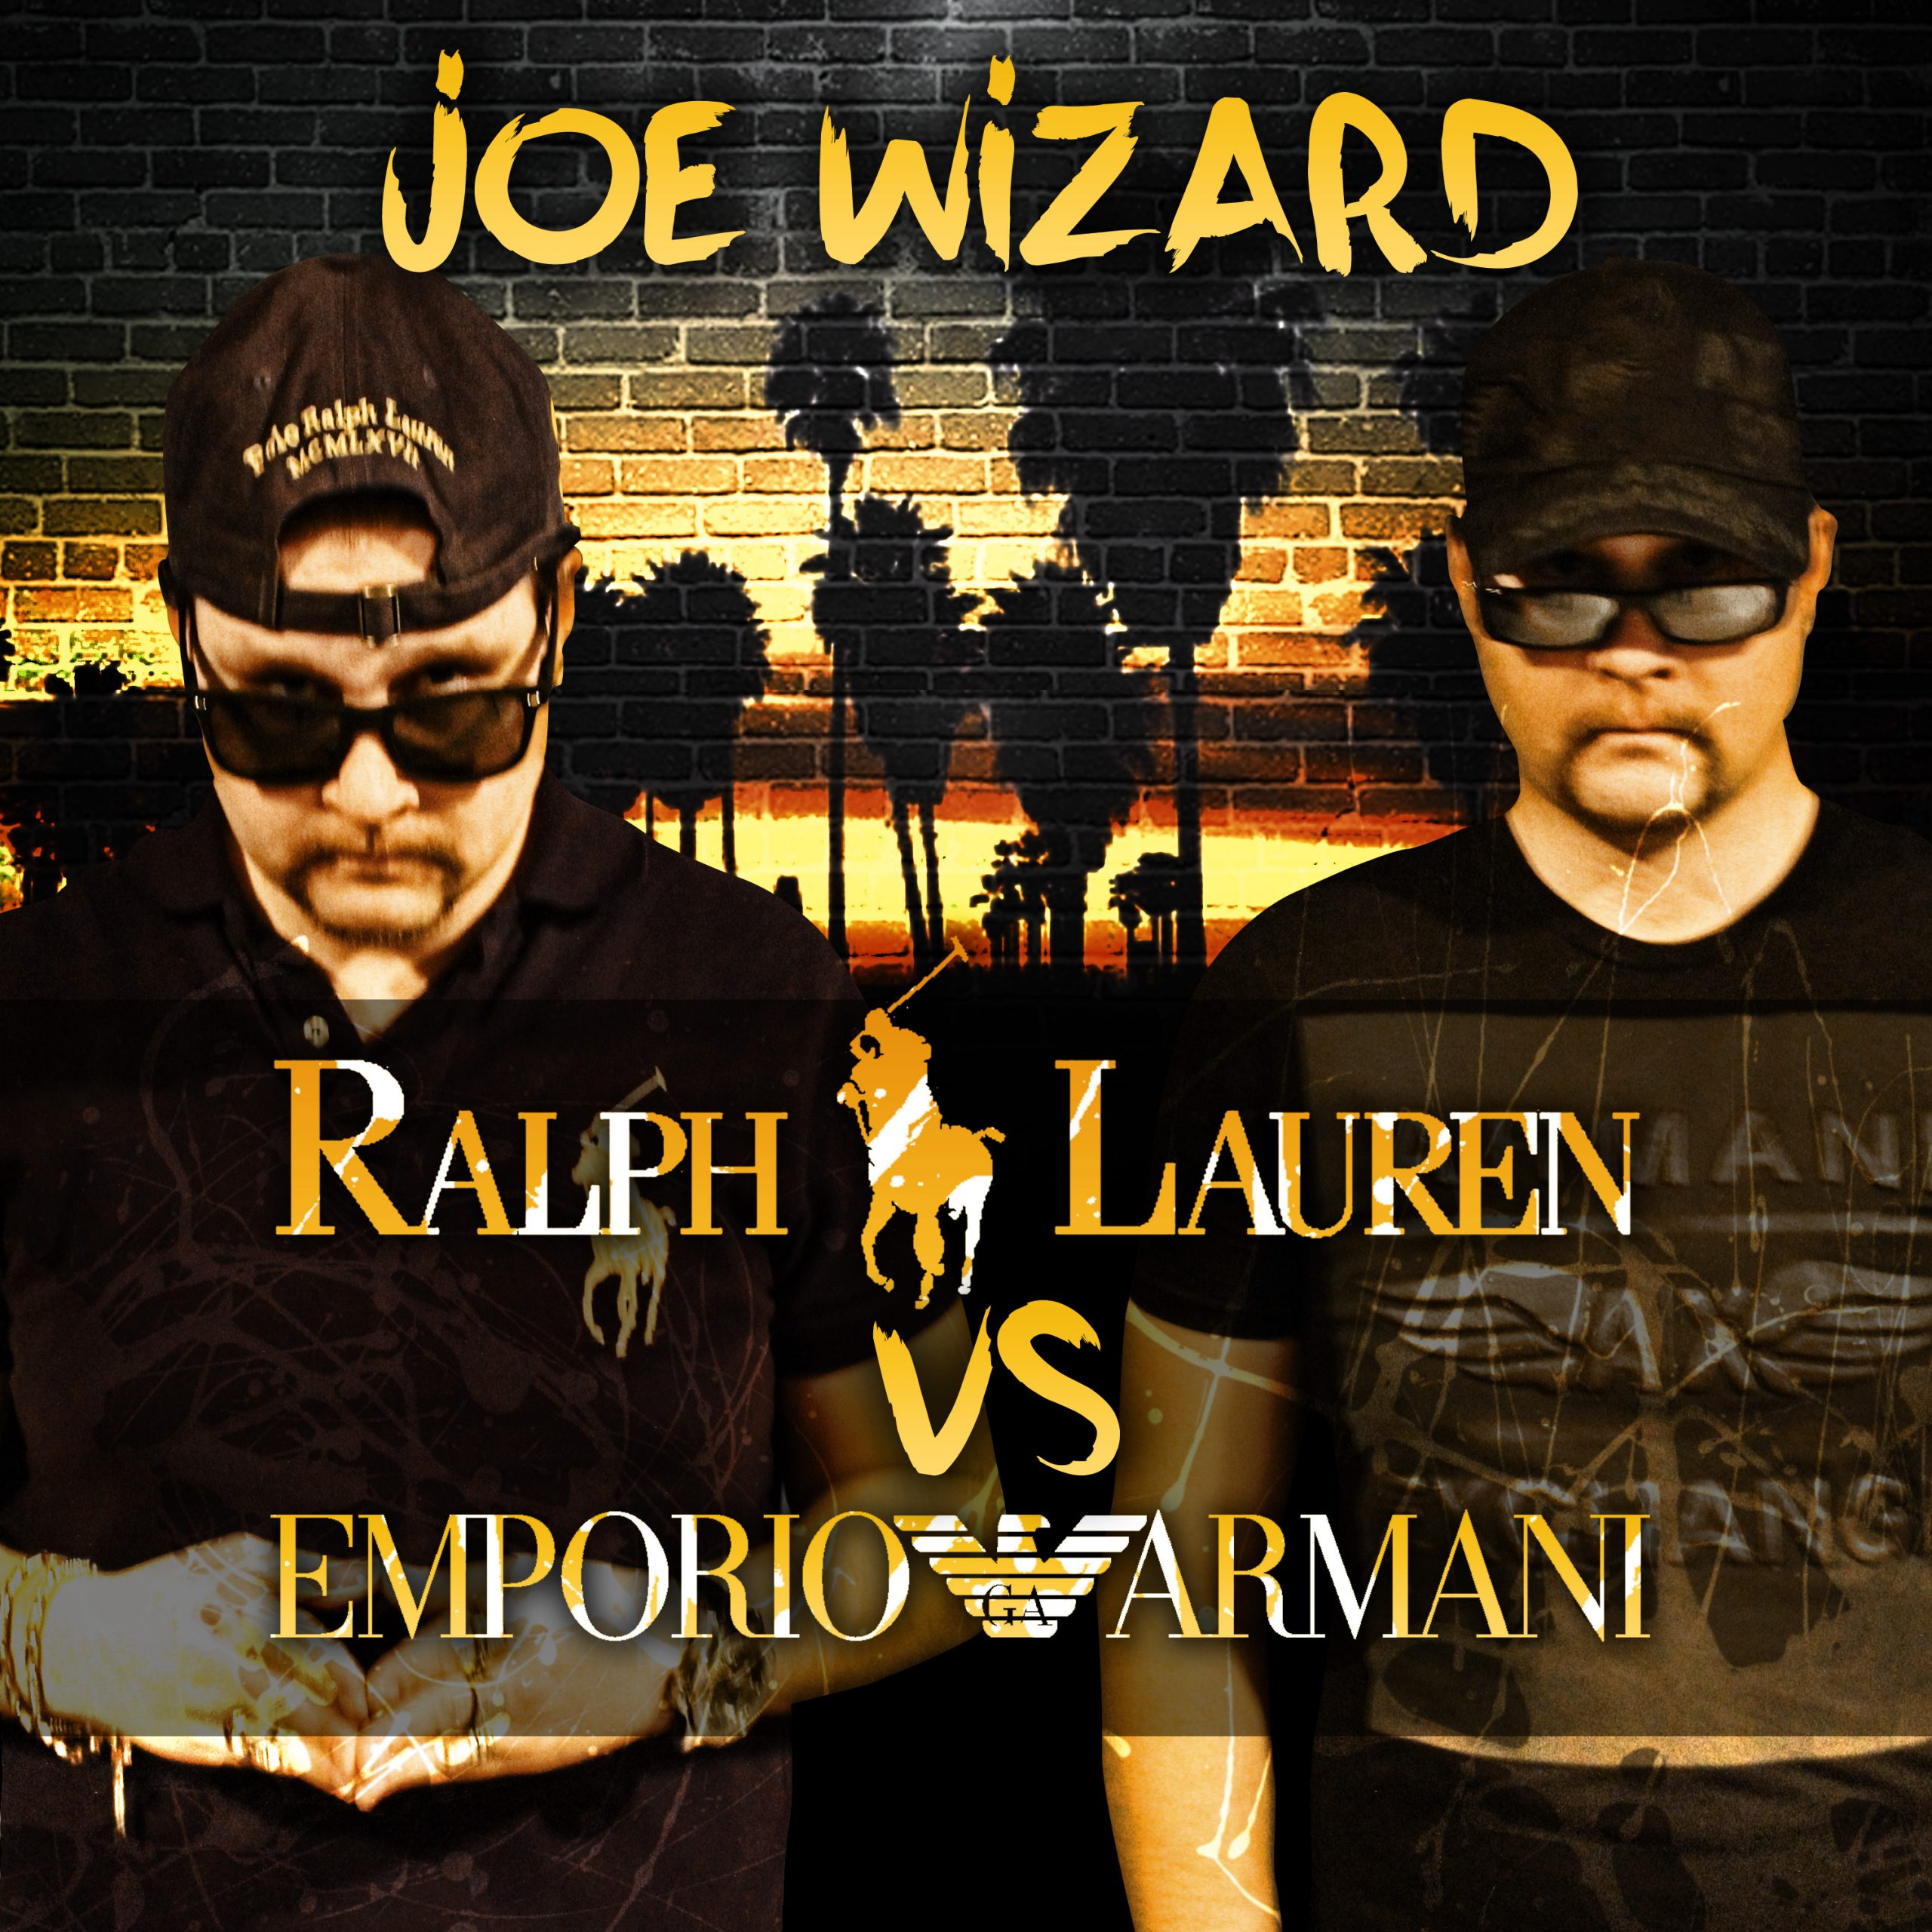 Joe Wizard cover art for Polo v.s Armani is Joe in 2 outfits one polo and second armani